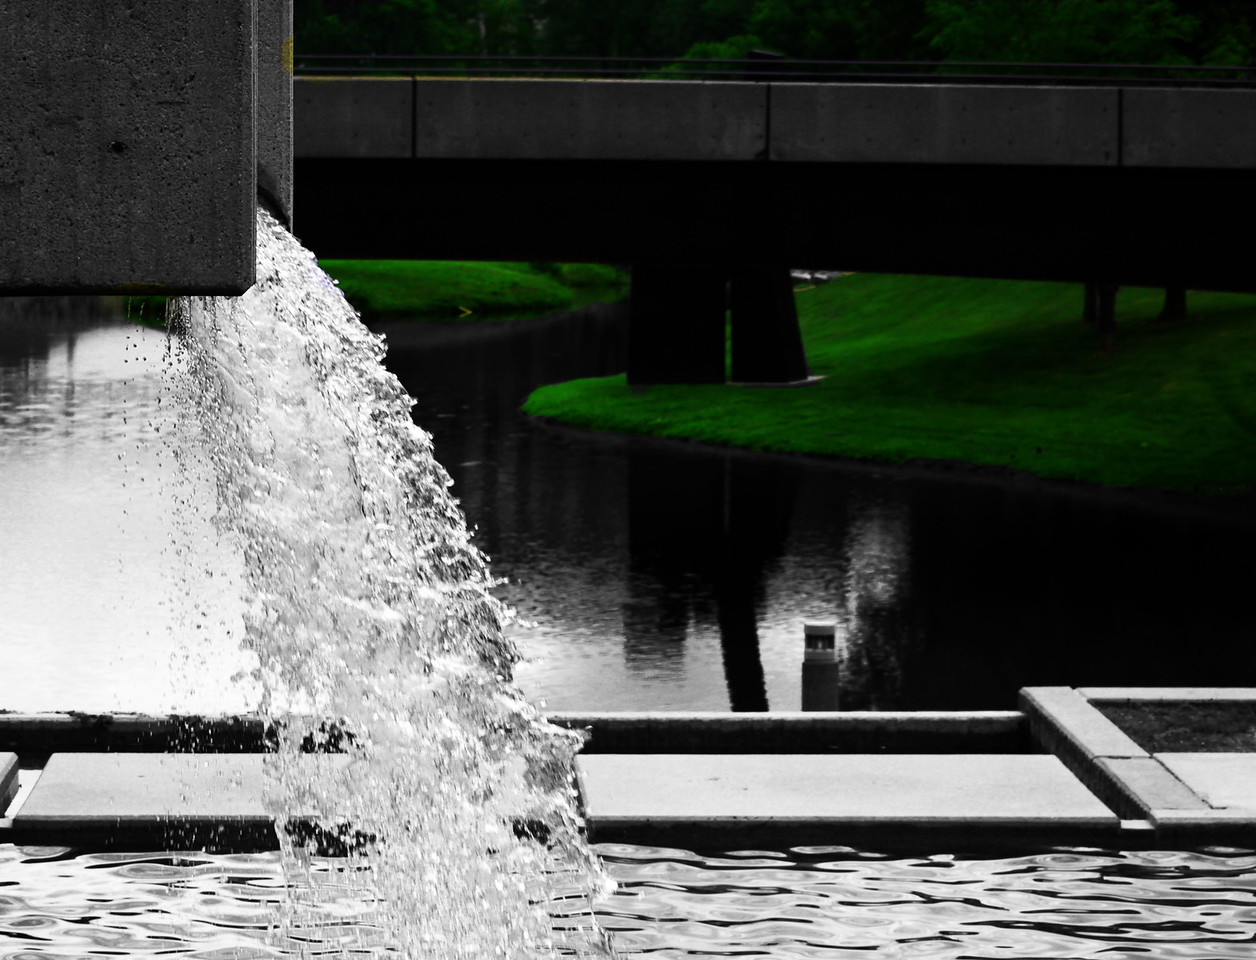 A little waterfall at the Gene Leahy Mall in downtown Omaha, nebraska.